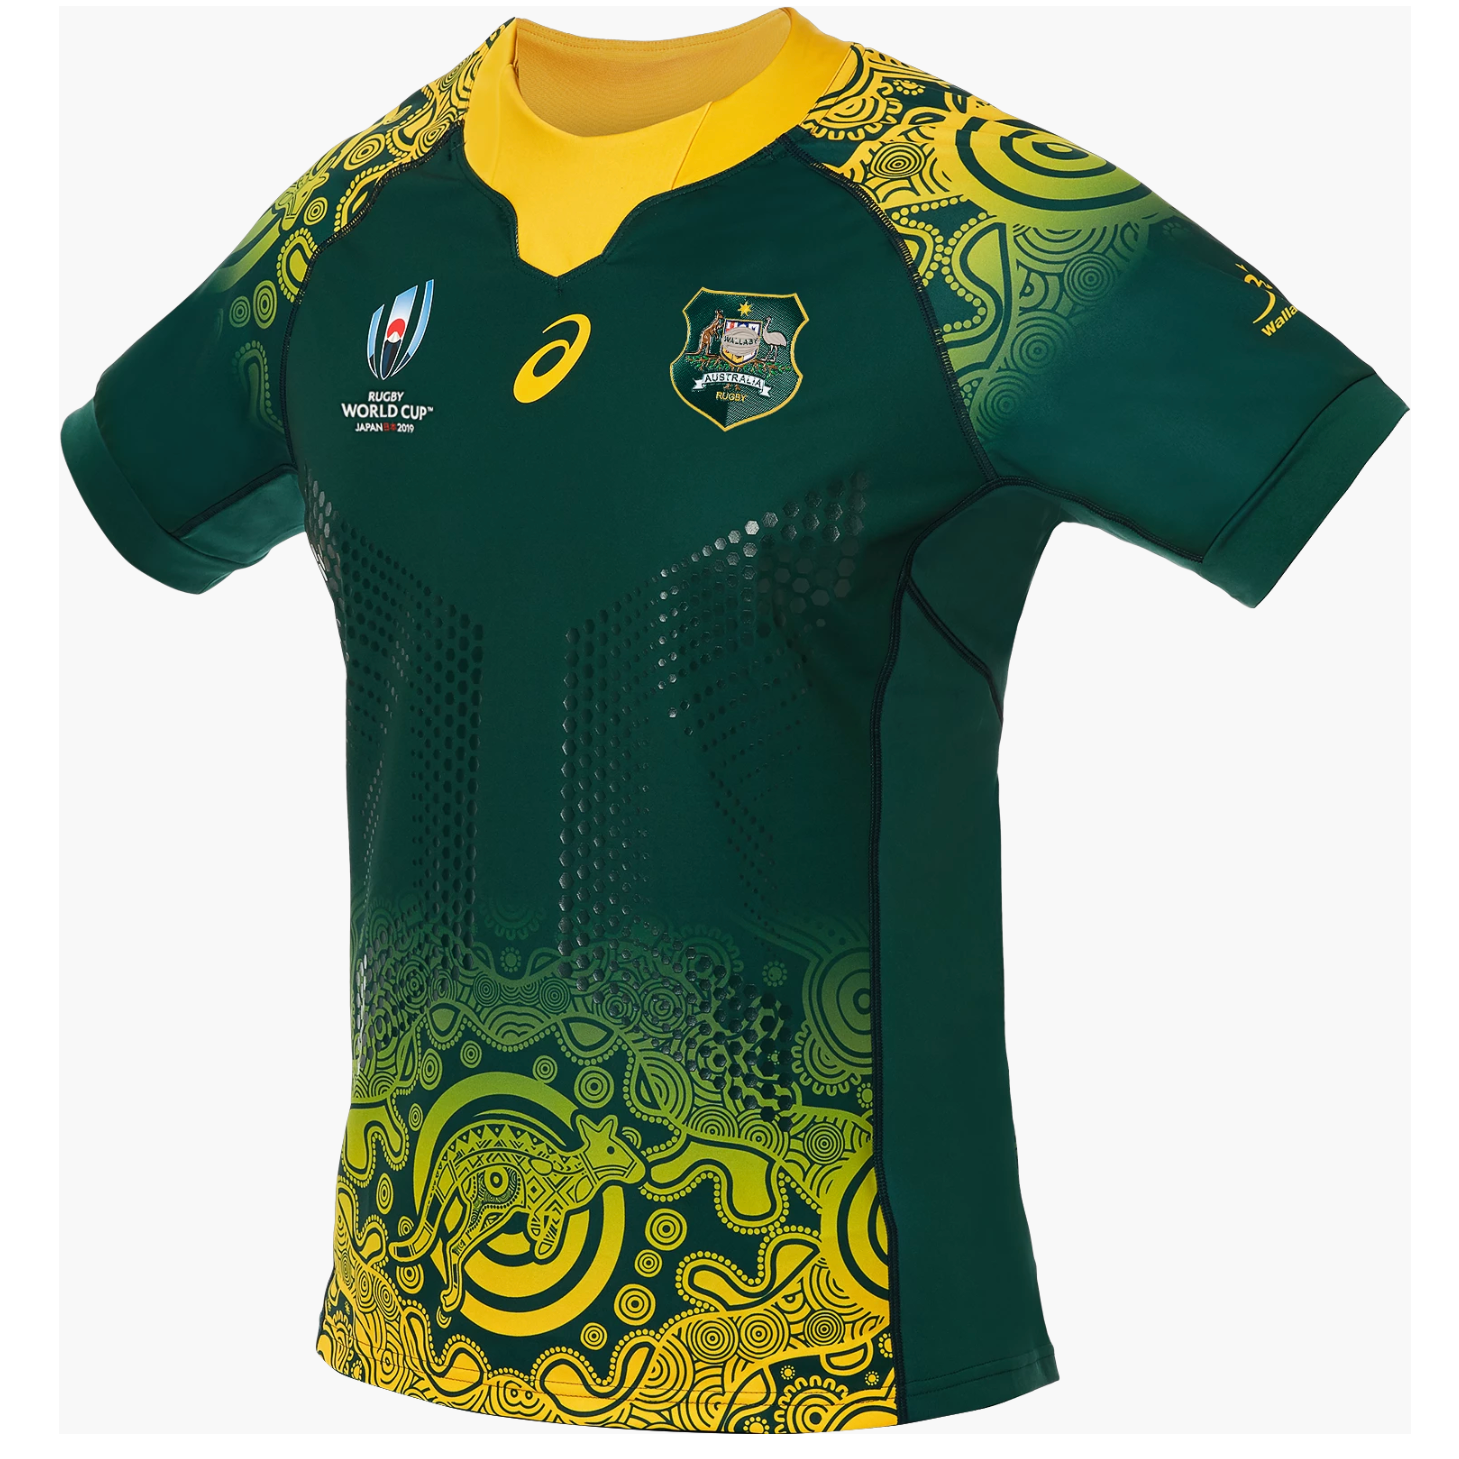 Australia Rugby World Cup 2019 Away Kit Cheap Soccer Jersey Australia Rugby Rugby World Cup Rugby